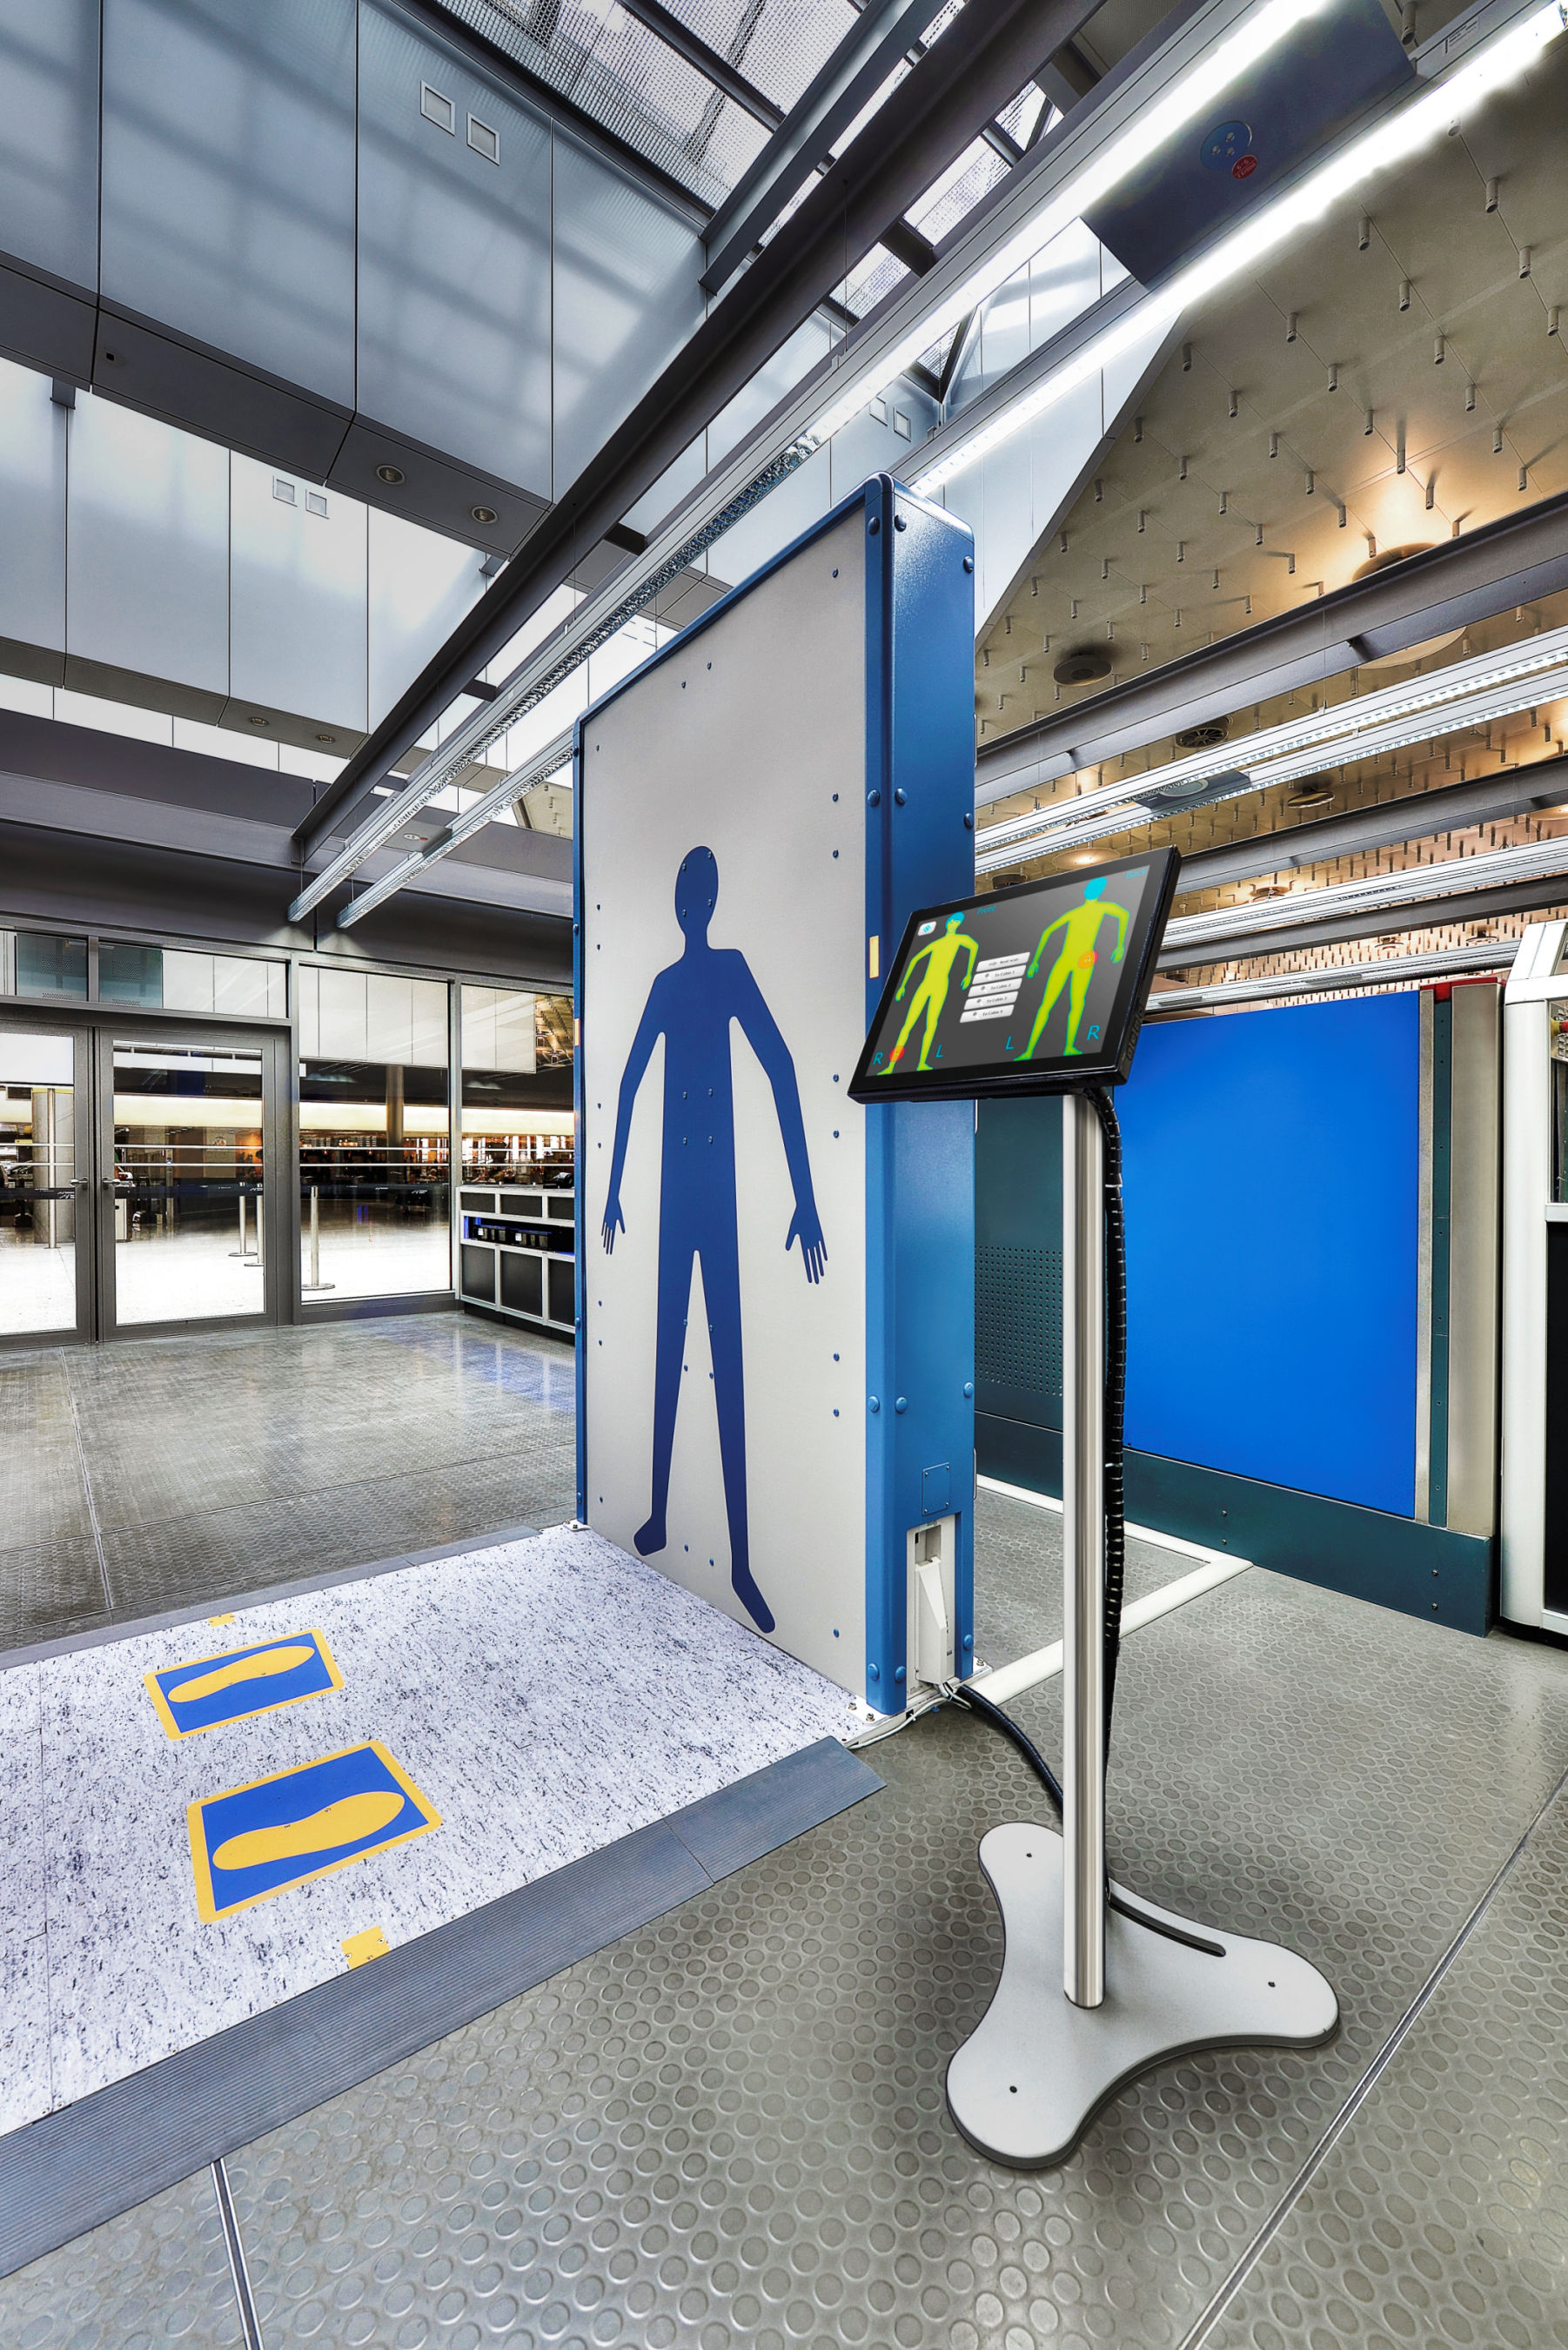 The QPS full body scanner provides rapid detection of dangerous items